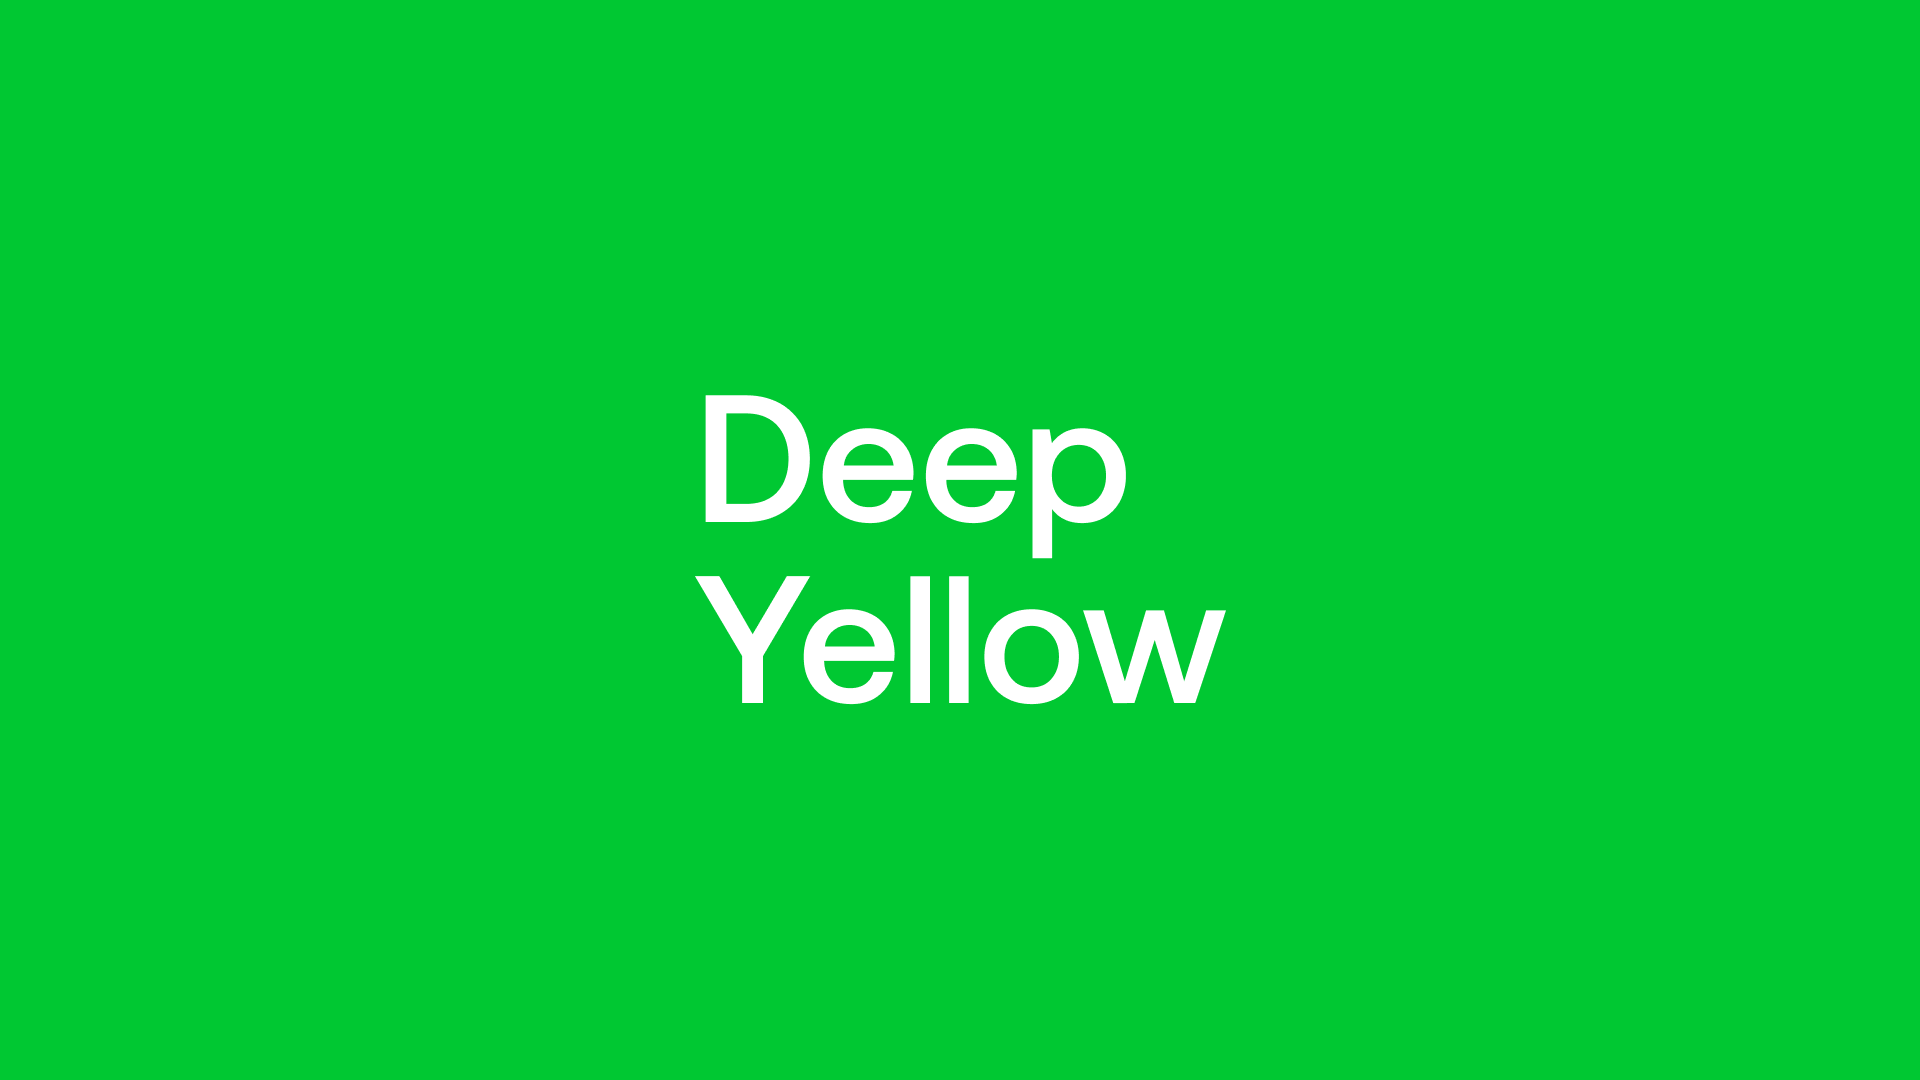 Deep Yellow (DYL) - $80 Won't be Enough for Most Juniors